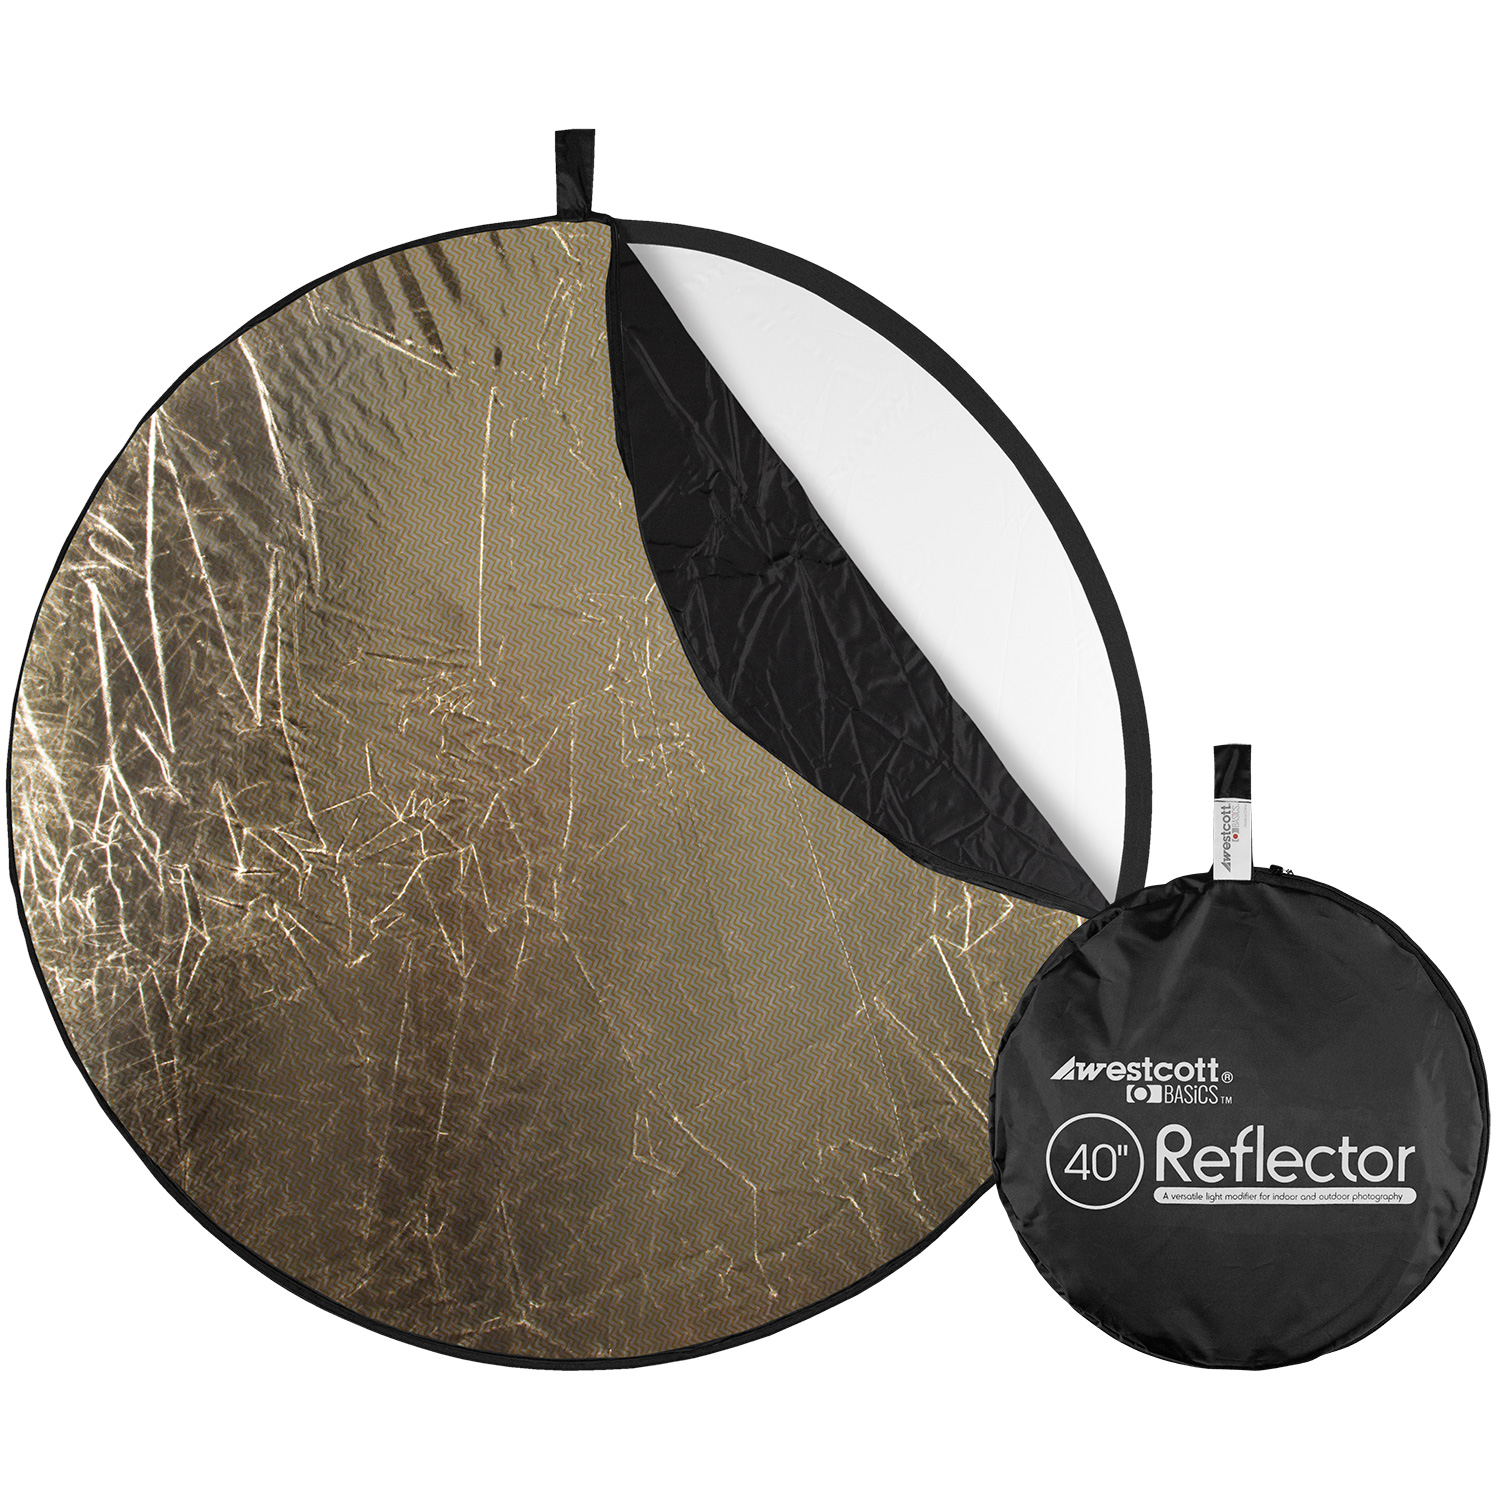 Collapsible 5-in-1 Reflector with Sunlight Surface (40-in.)